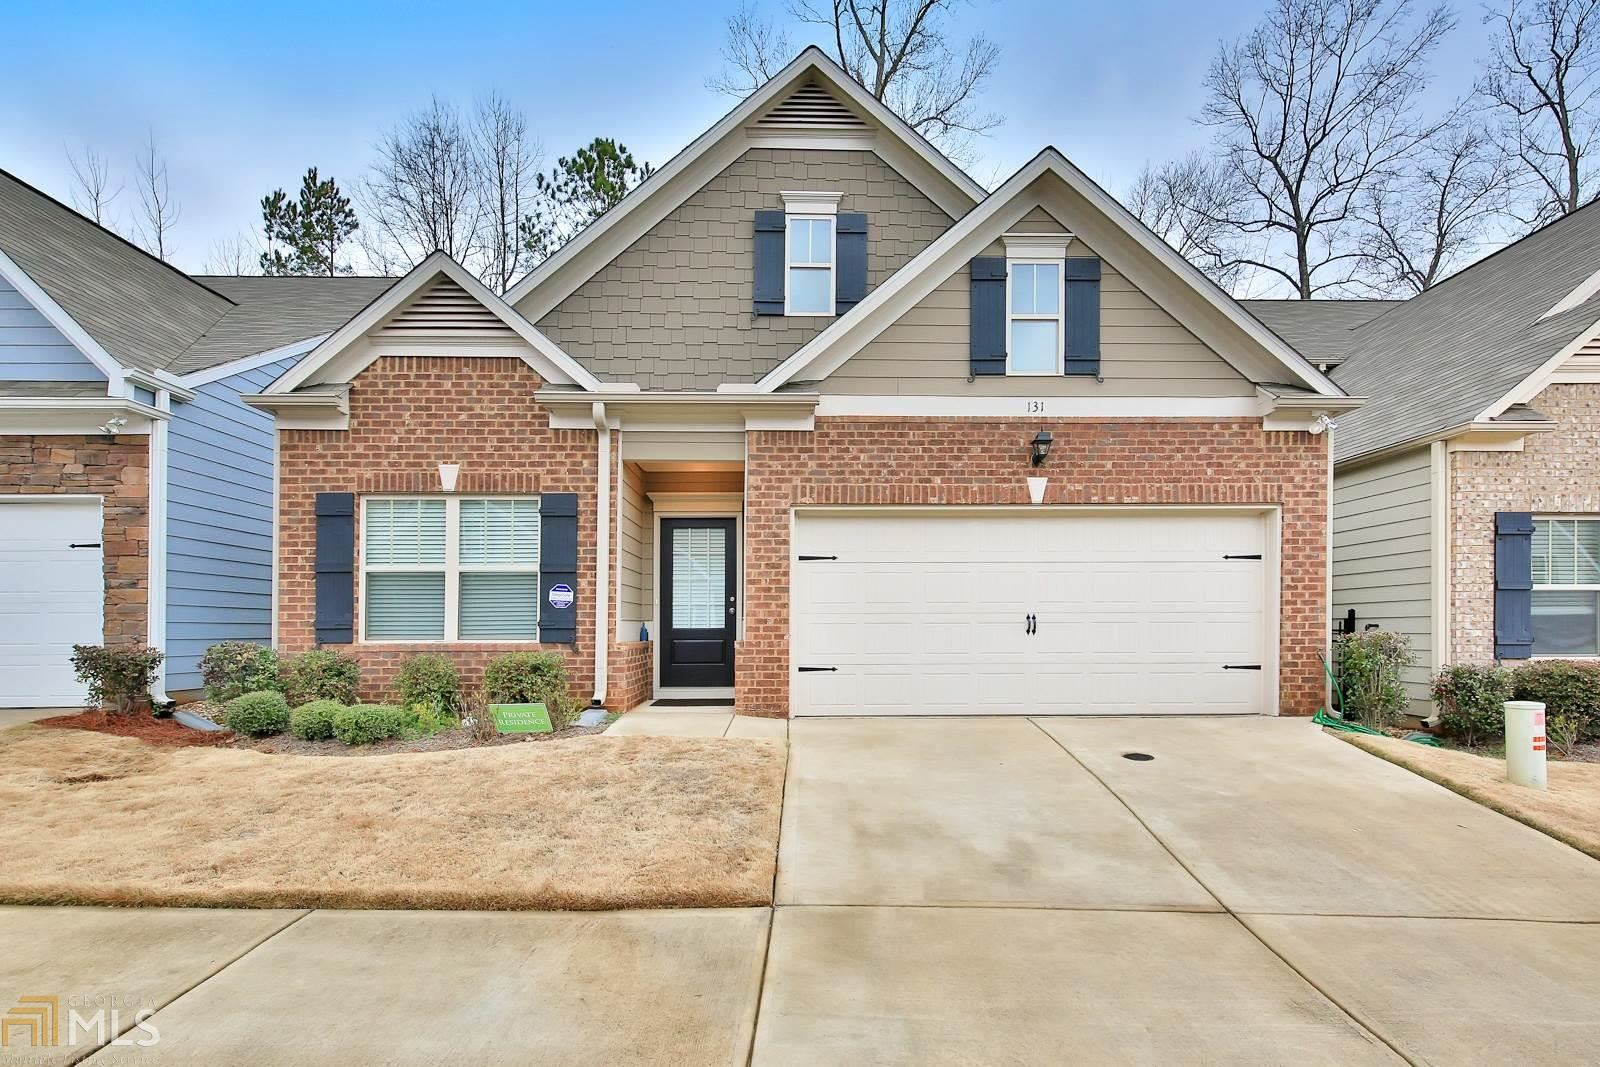 131 Hickory Village Cir, Canton, GA 30115 - MLS#: 8734007